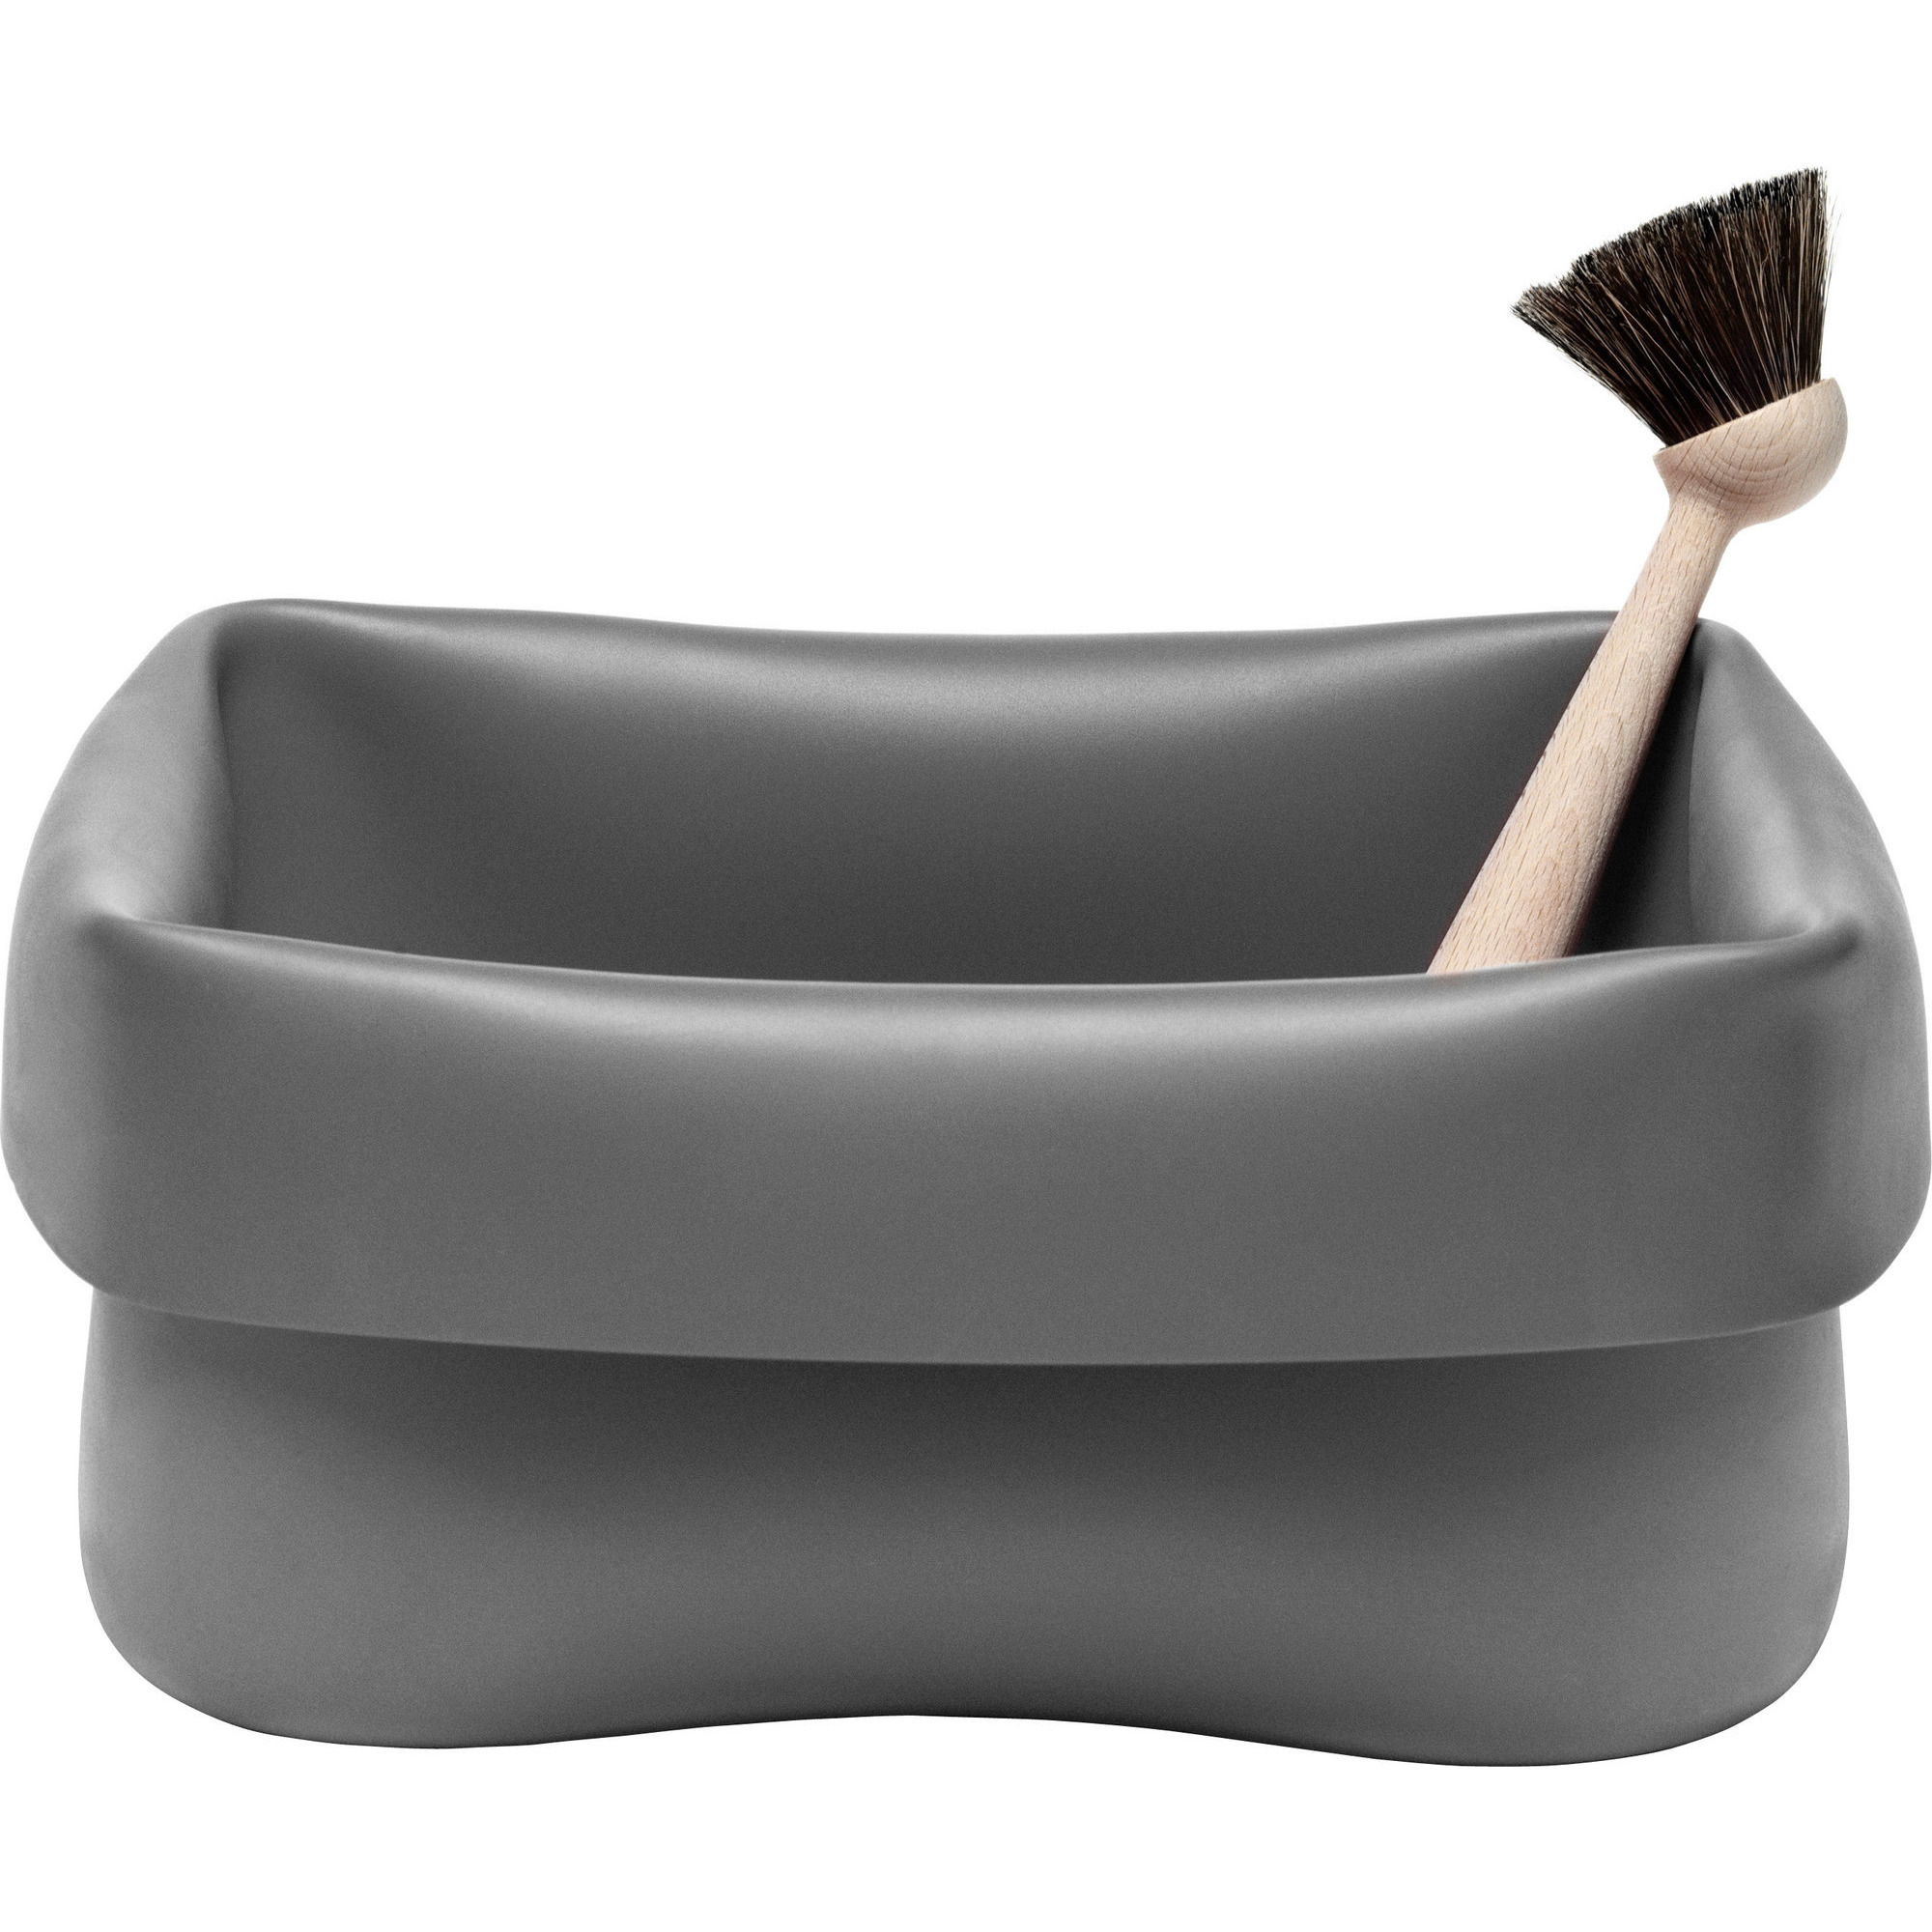 Normann Copenhagen Washing-up Bowl & Brush Grey